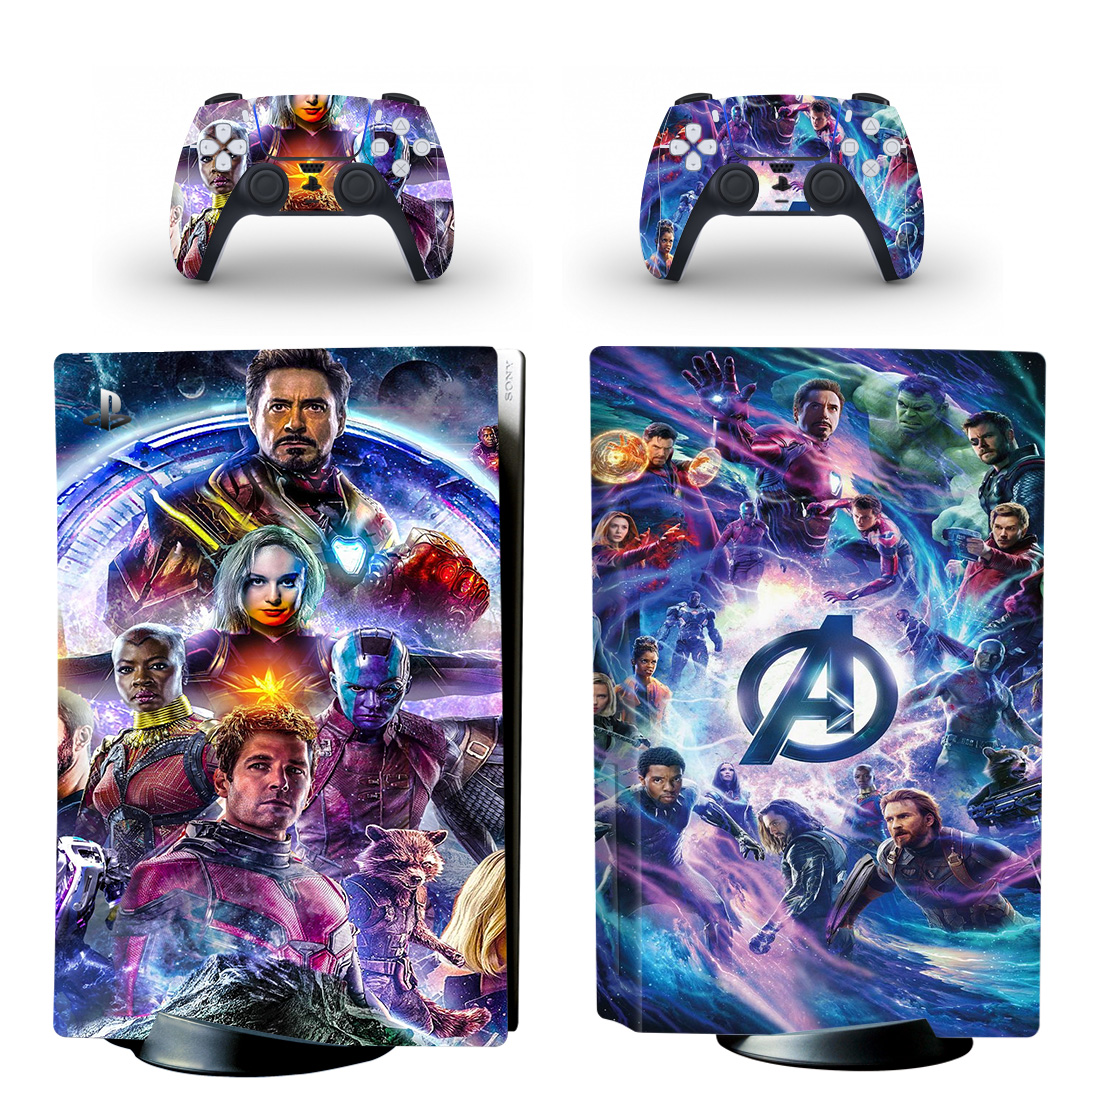 Avengers Skin Sticker For PlayStation 5 And Controllers